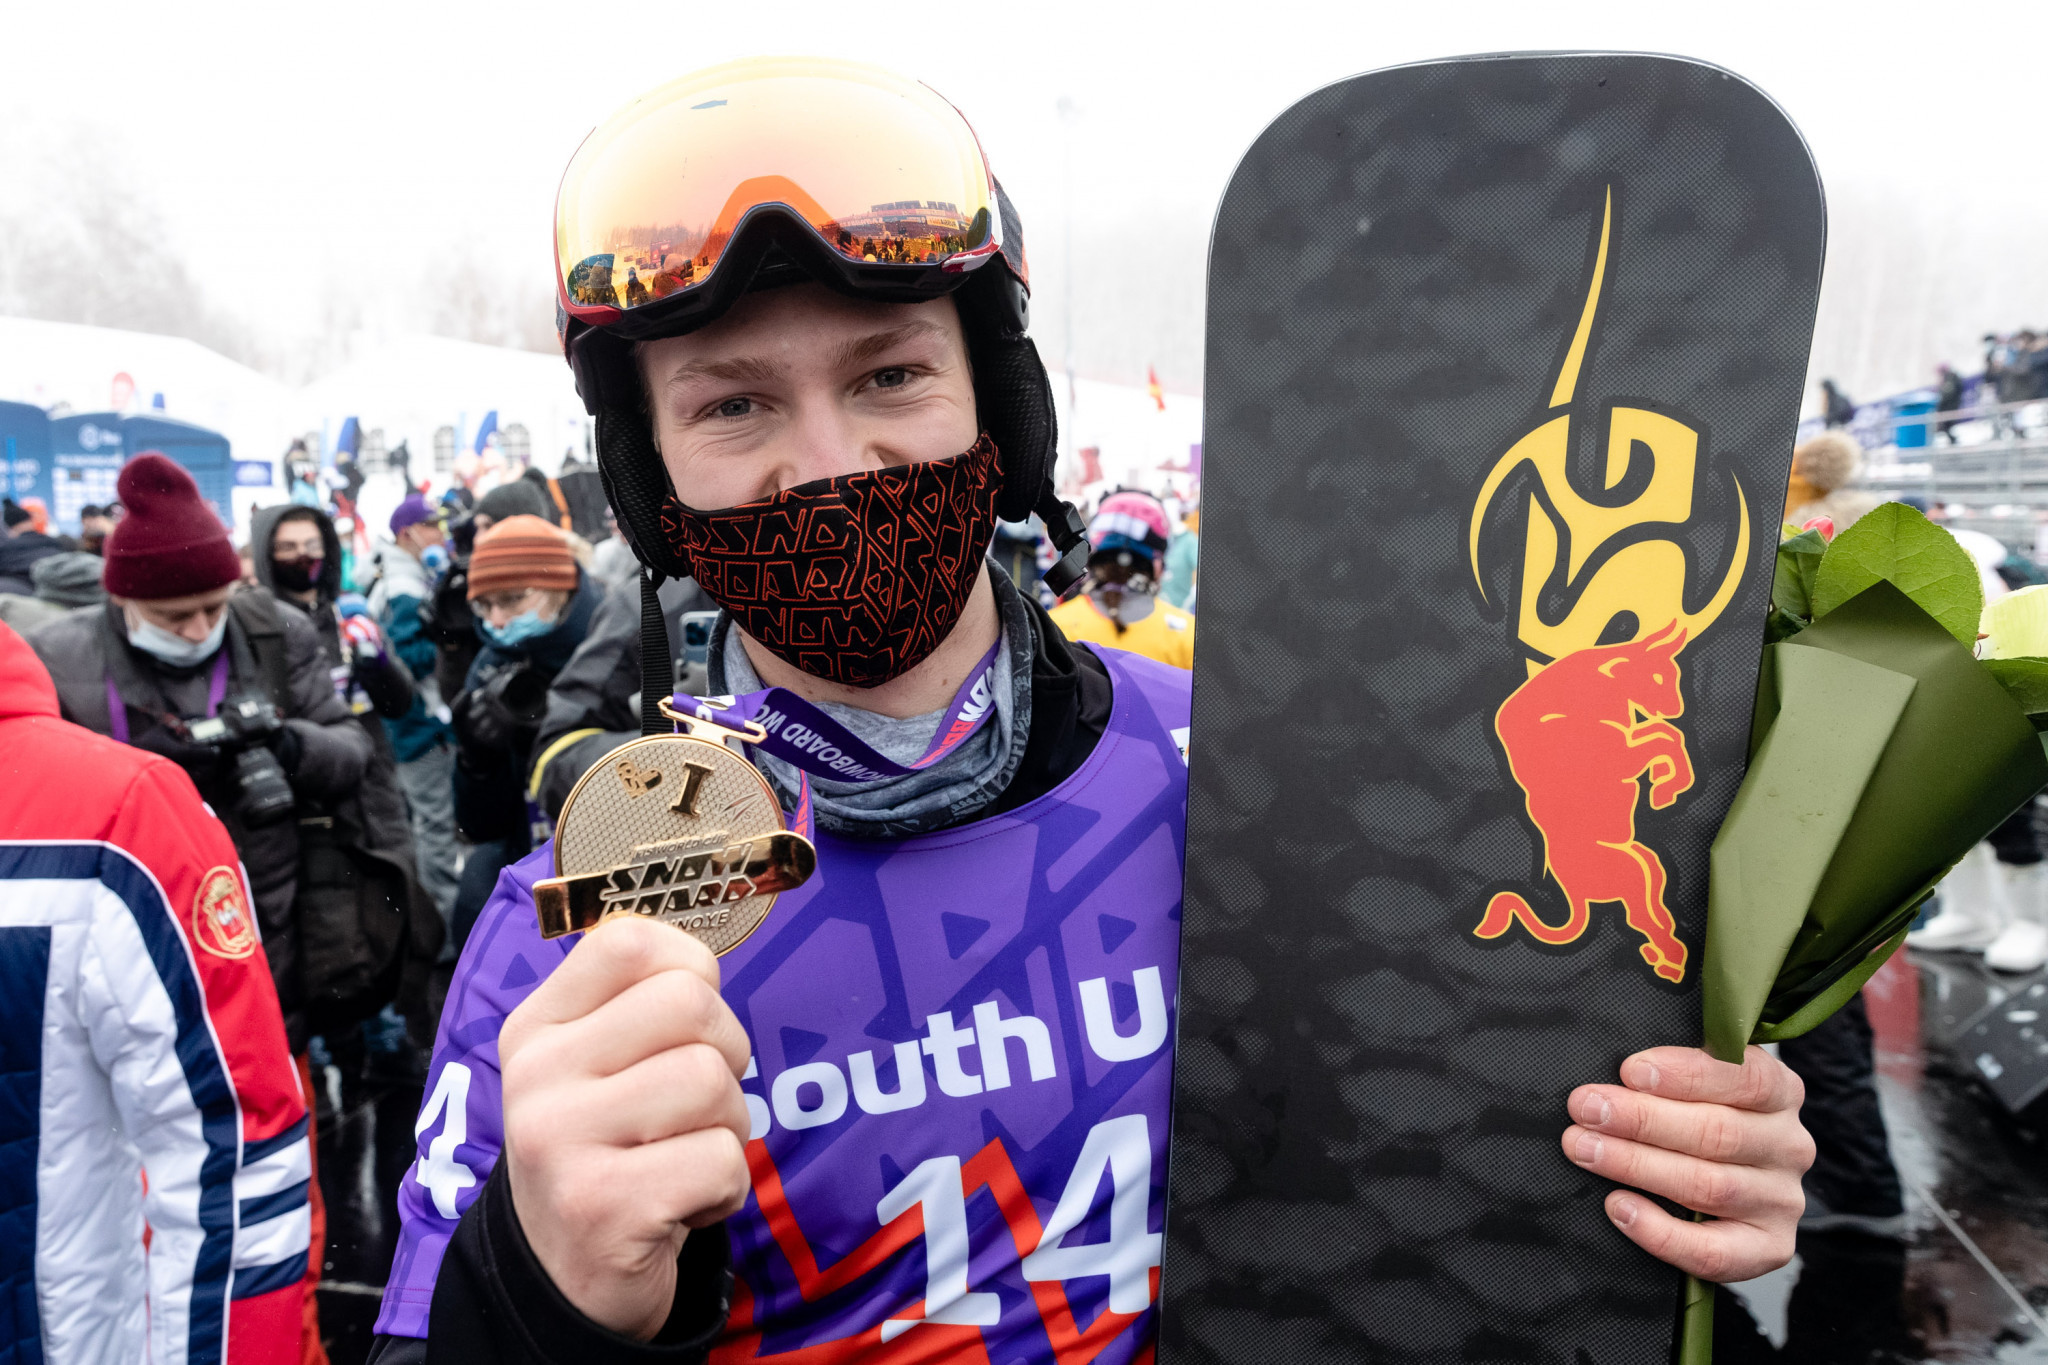 Loginov and Zogg victorious on second day of Snowboard World Cup in Russia